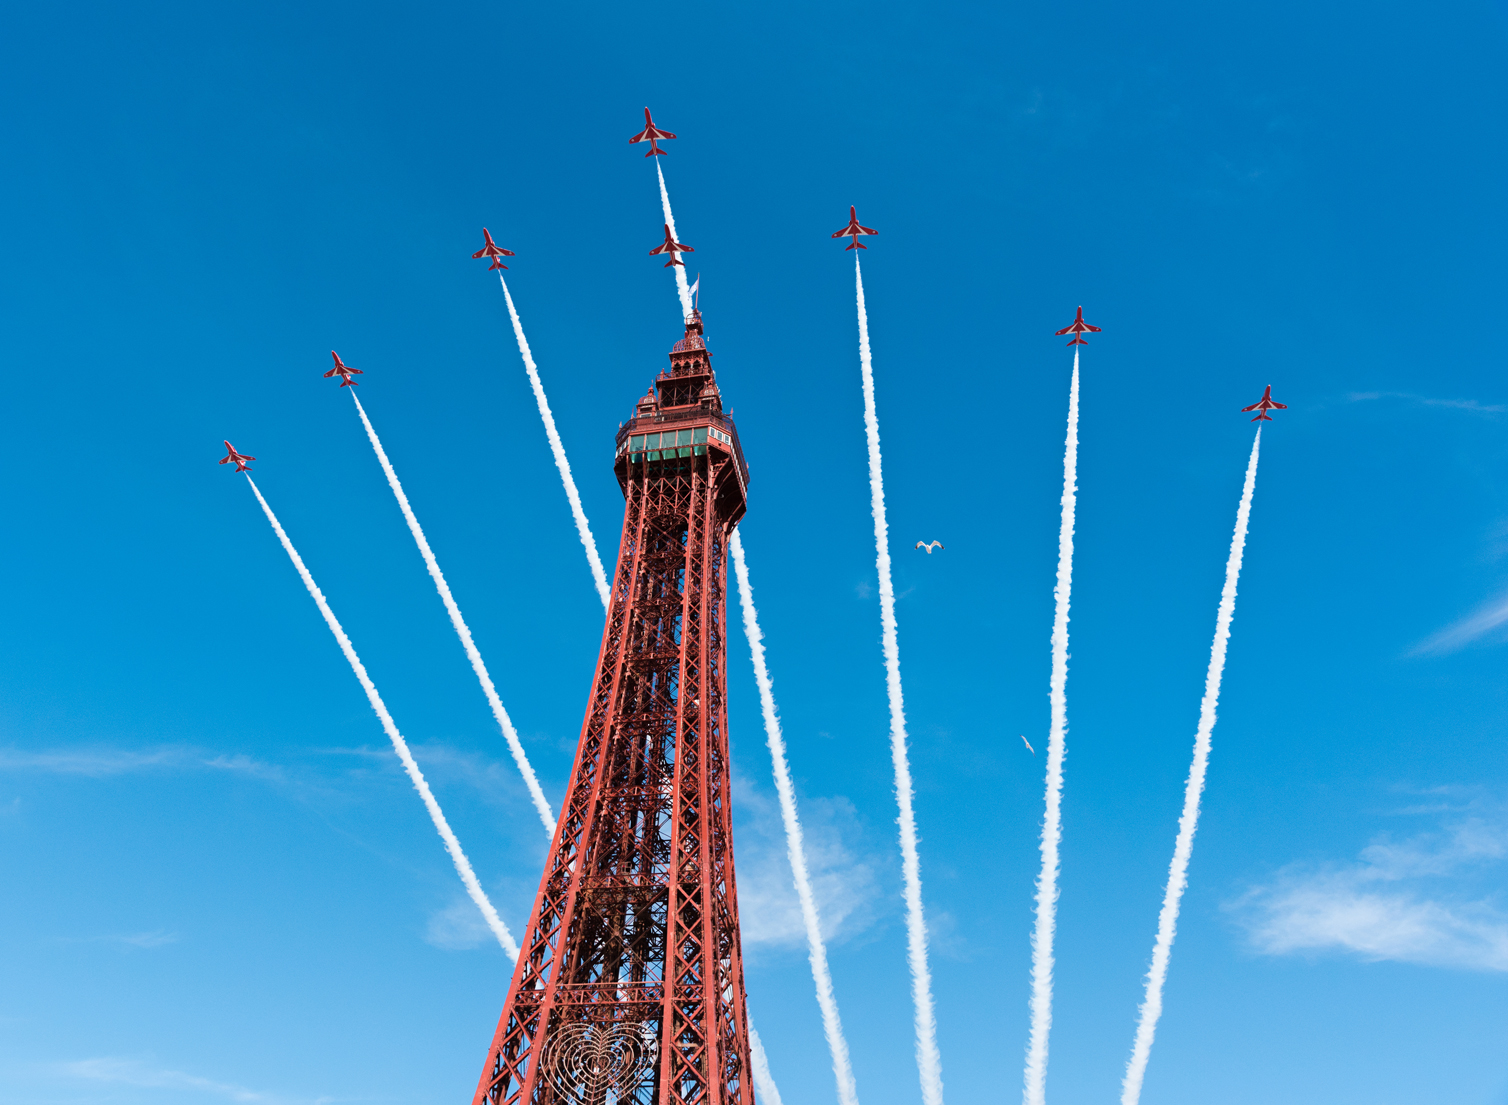 The Red Arrows arrive in Blackpool